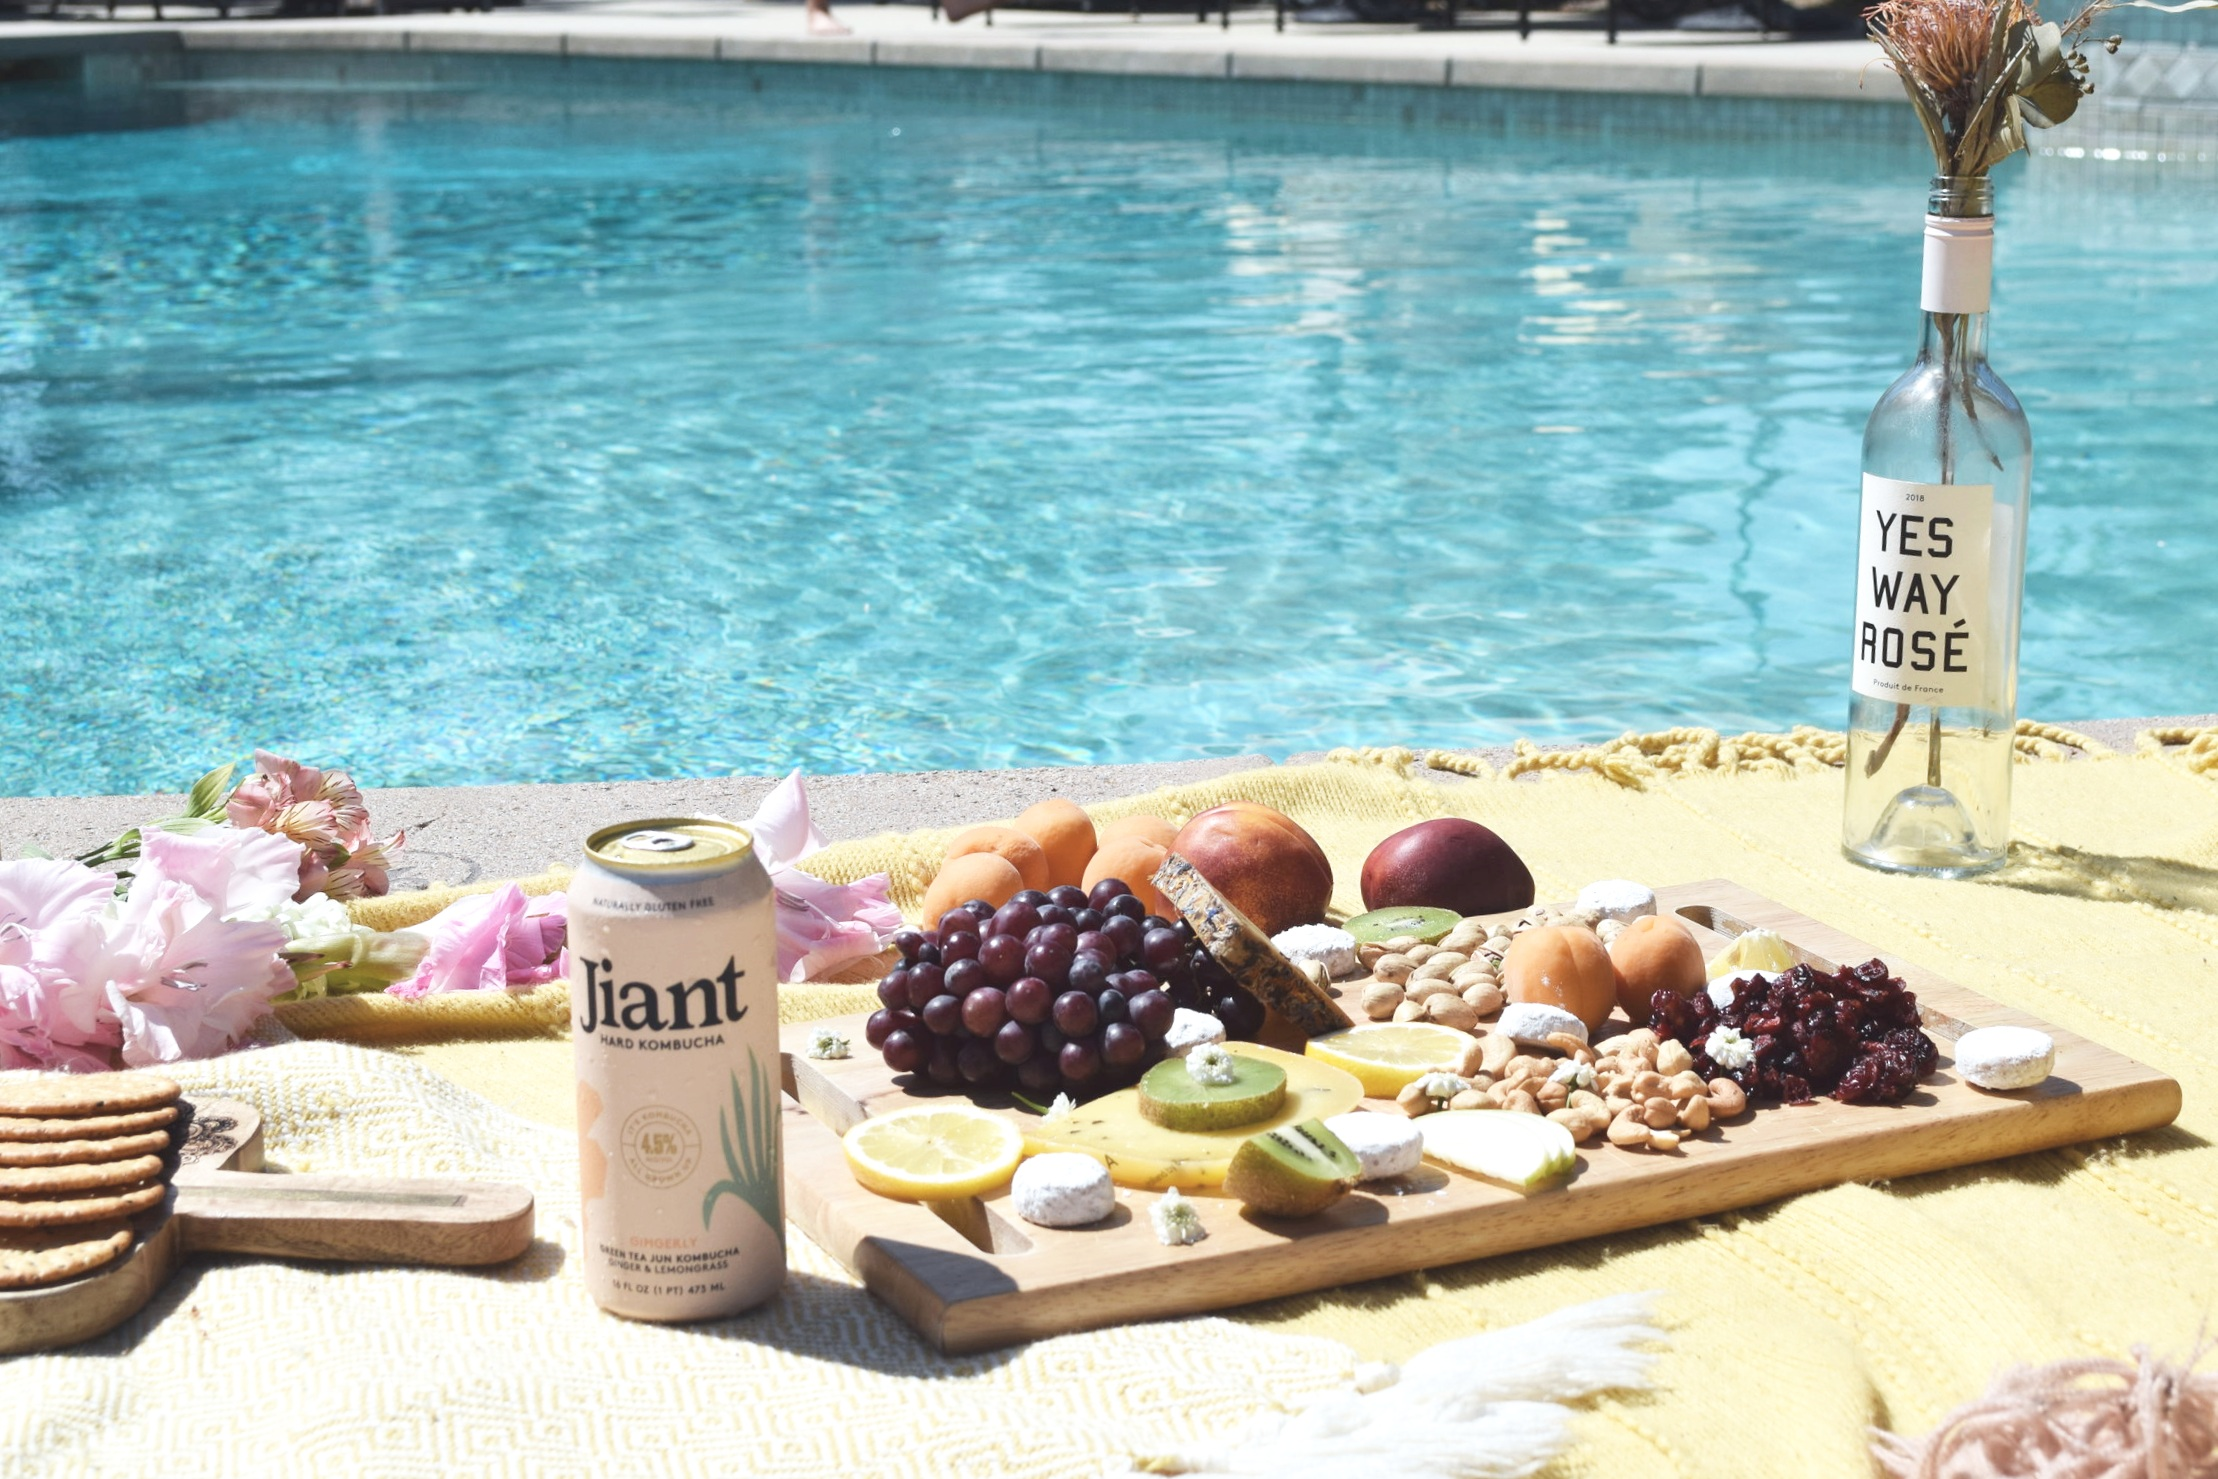 Jiant Booch is the perfect drink to bring to those summer picnics/parties! It's light, deliciously flavored, and contains probiotics… YES PLEASE.